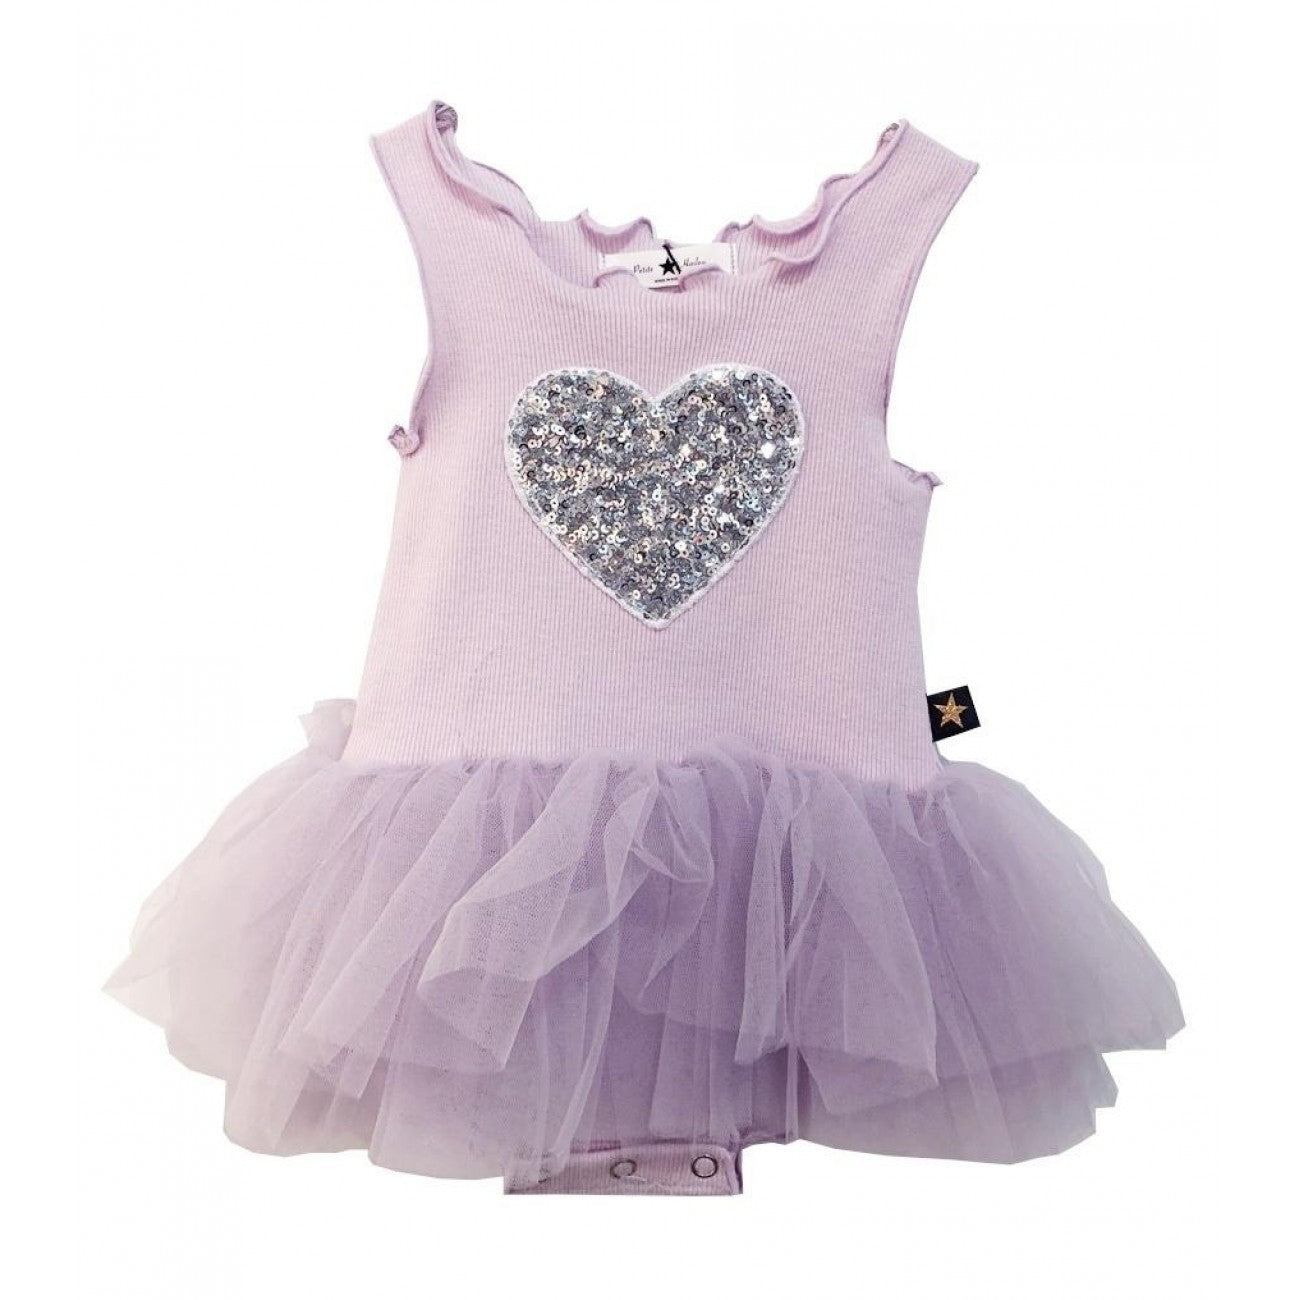 PH HEART BABY TUTU DRESS-LAVENDER